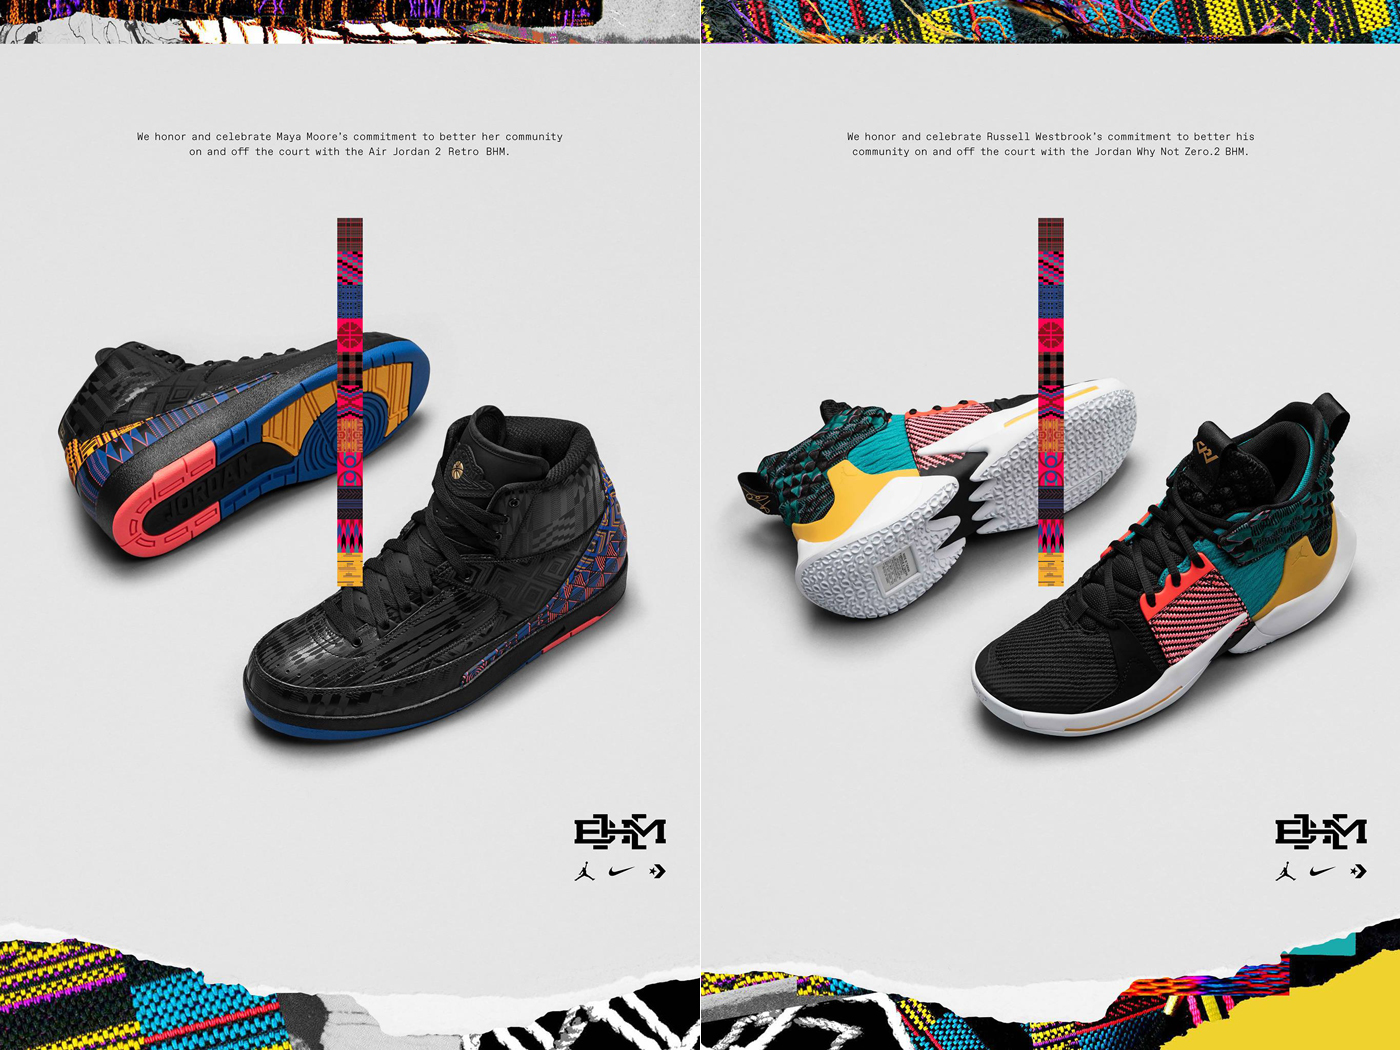 sports shoes 24baa 21290 Where to Buy the Jordan BHM 2019 Shoes | SneakerFits.com